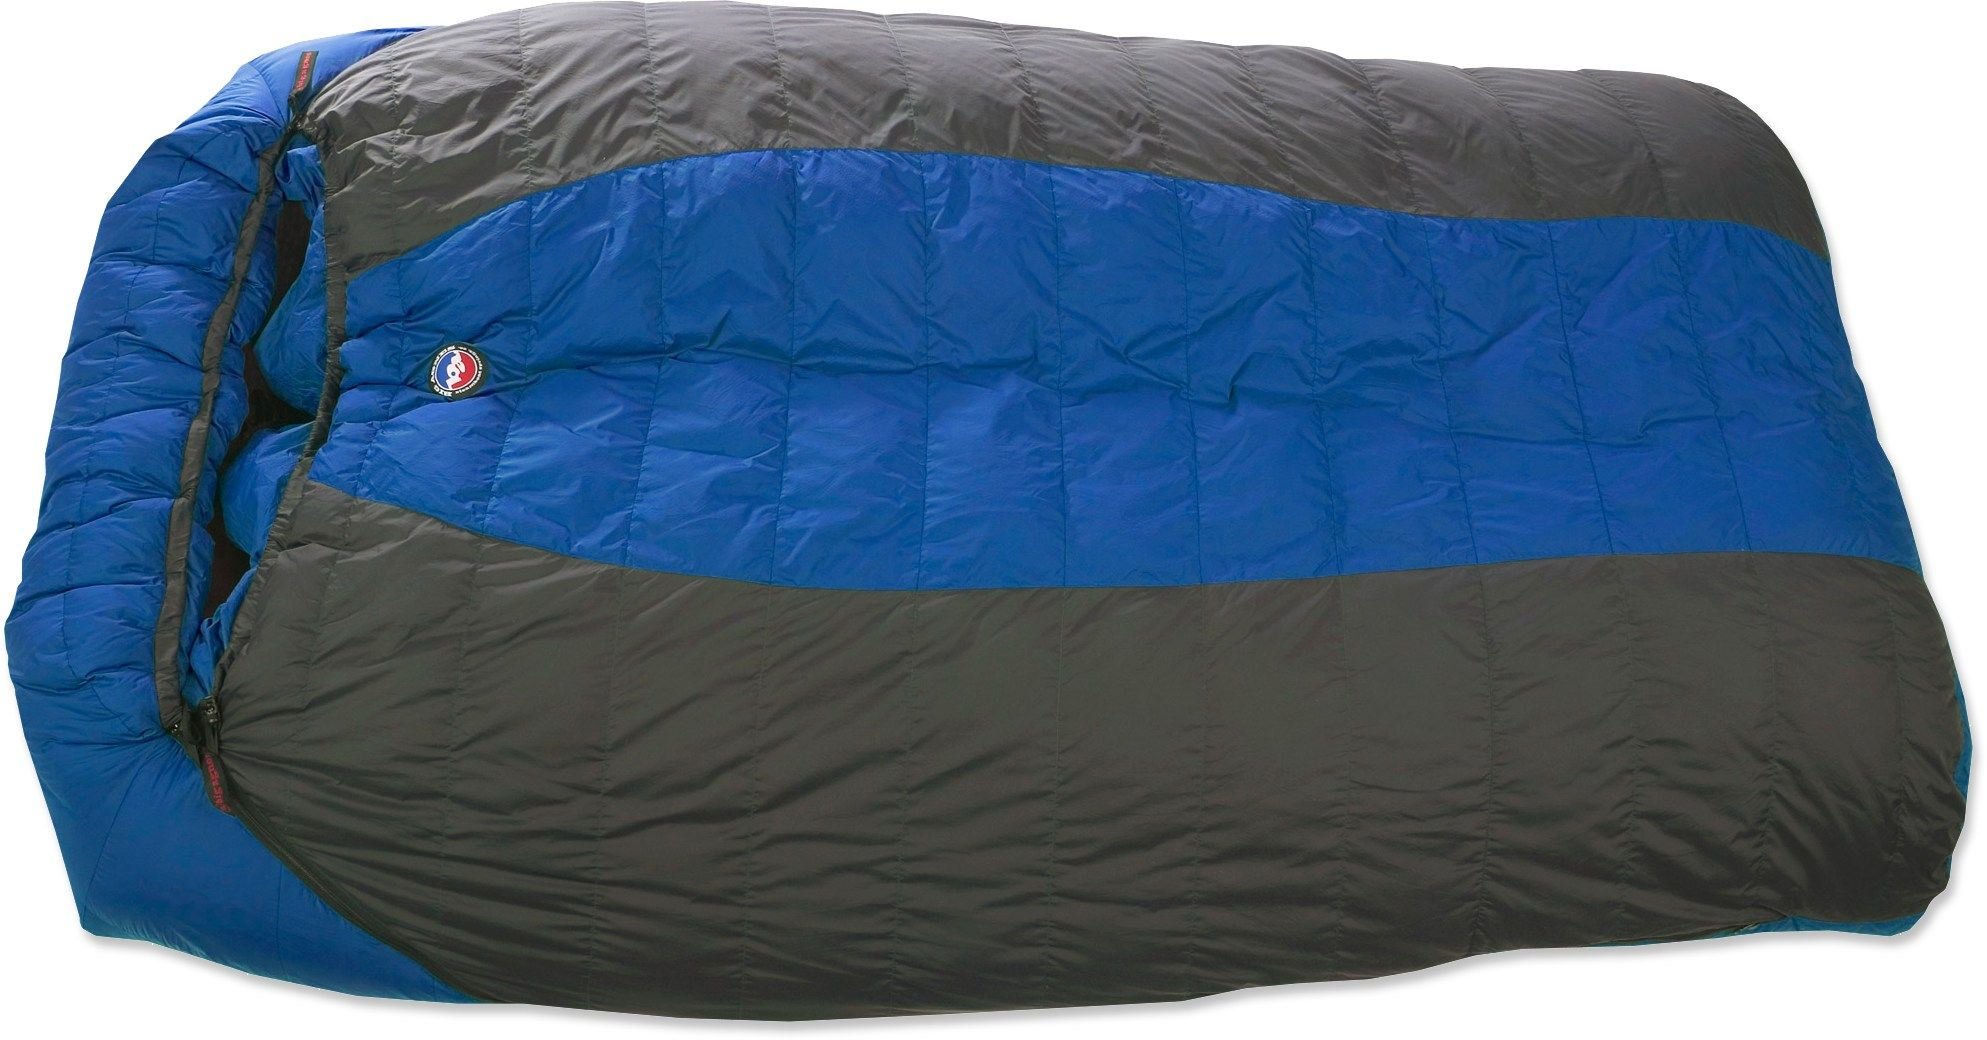 Offering The Same Great Features As A Single Agnes Sleeping Bag Ious King Solomon Double Is Designed To Sleep 2 People Comfortably